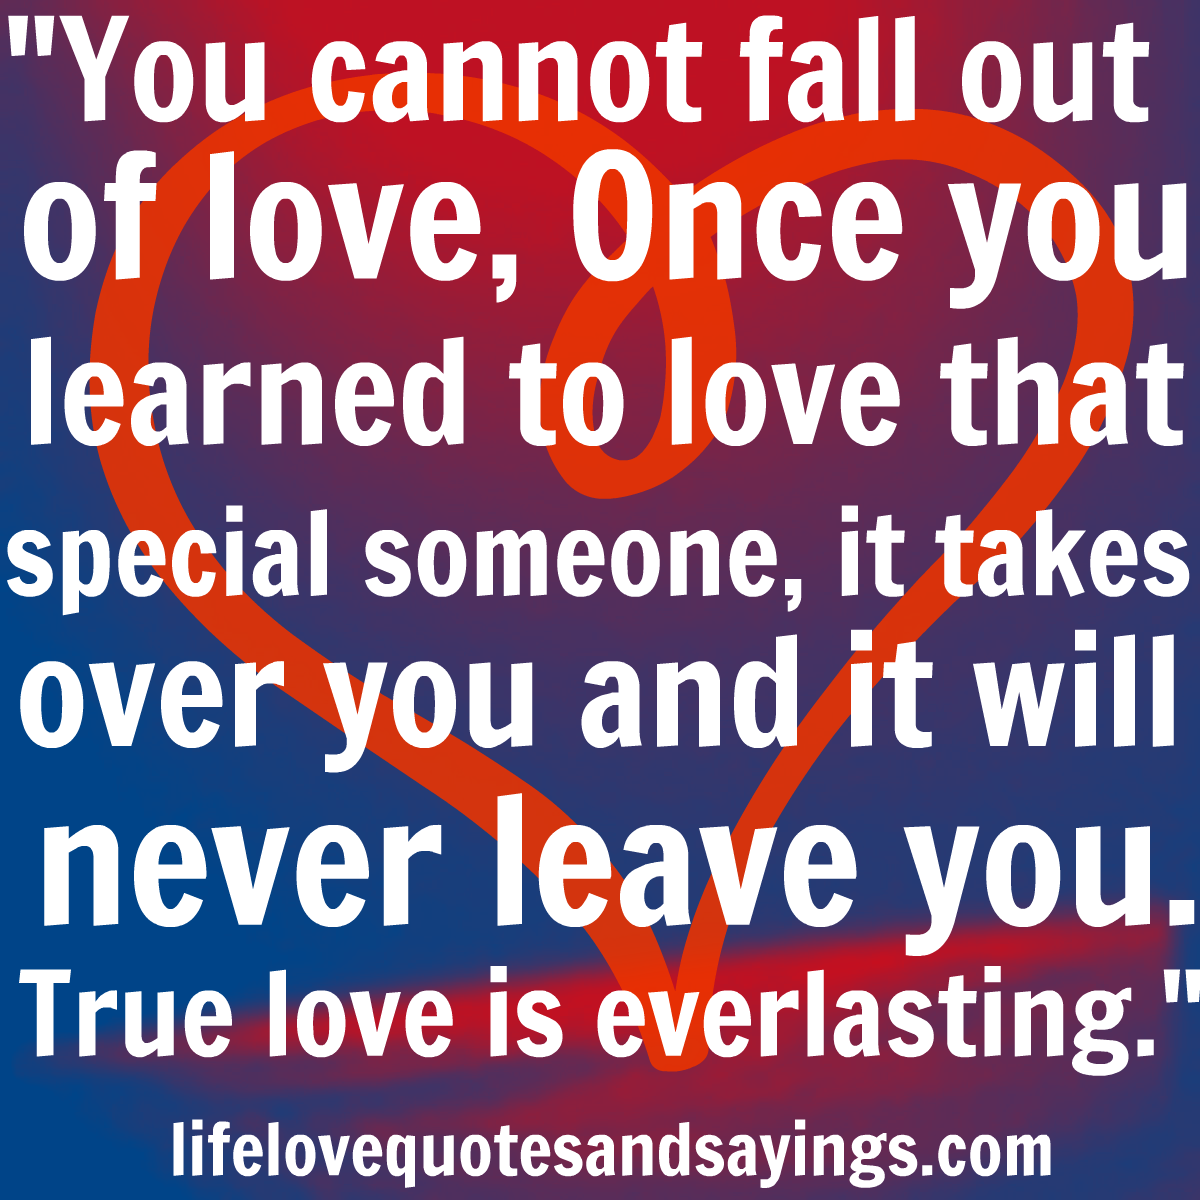 falling in love quotes and sayings tagalog Quotes Happy Love Life Tagalog